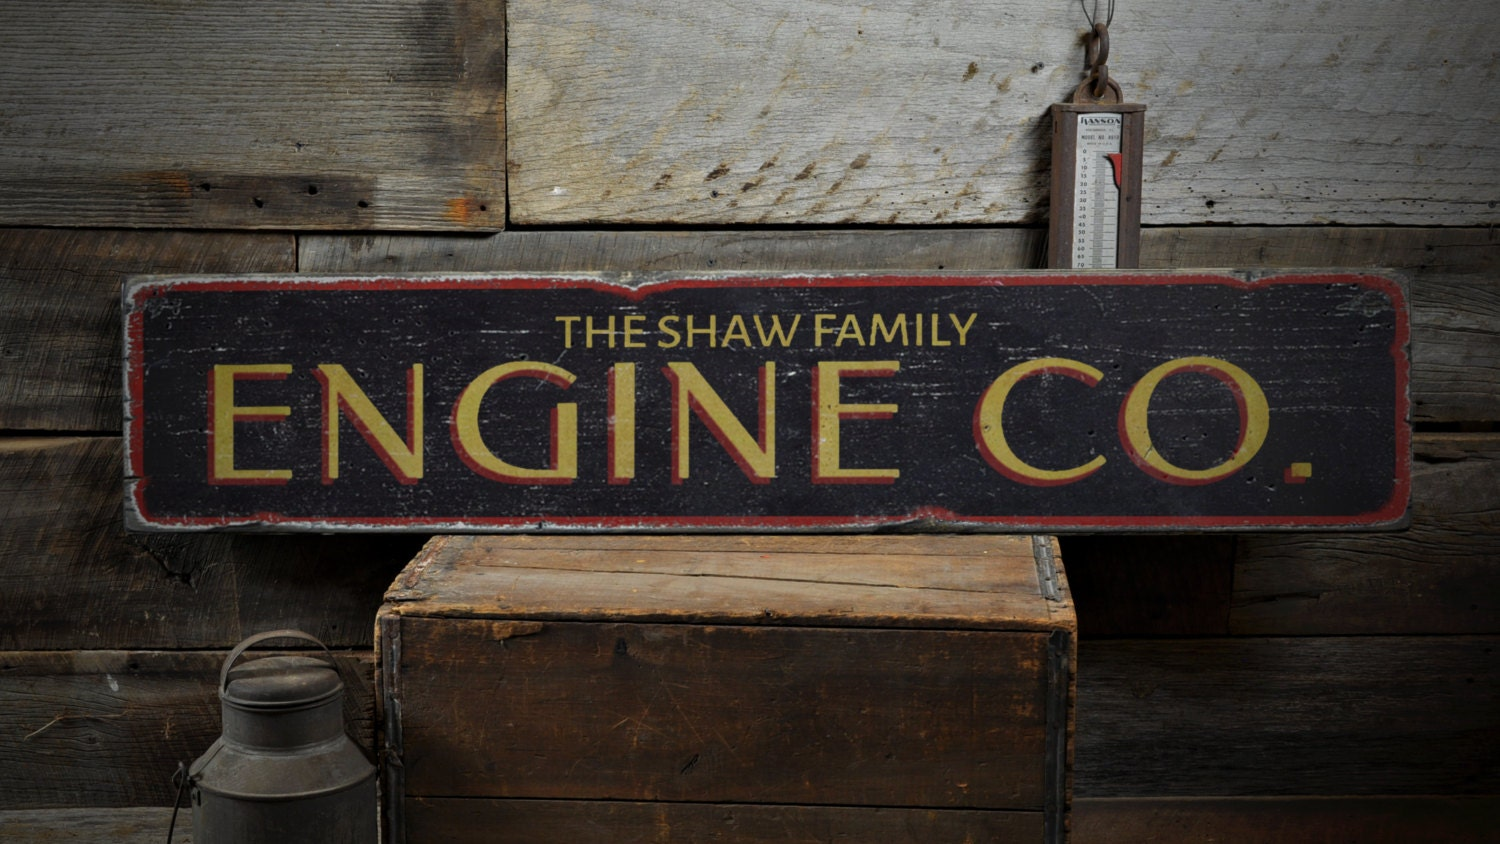 Firefighter Man Cave Signs : Engine co wood sign custom family name fireman man cave